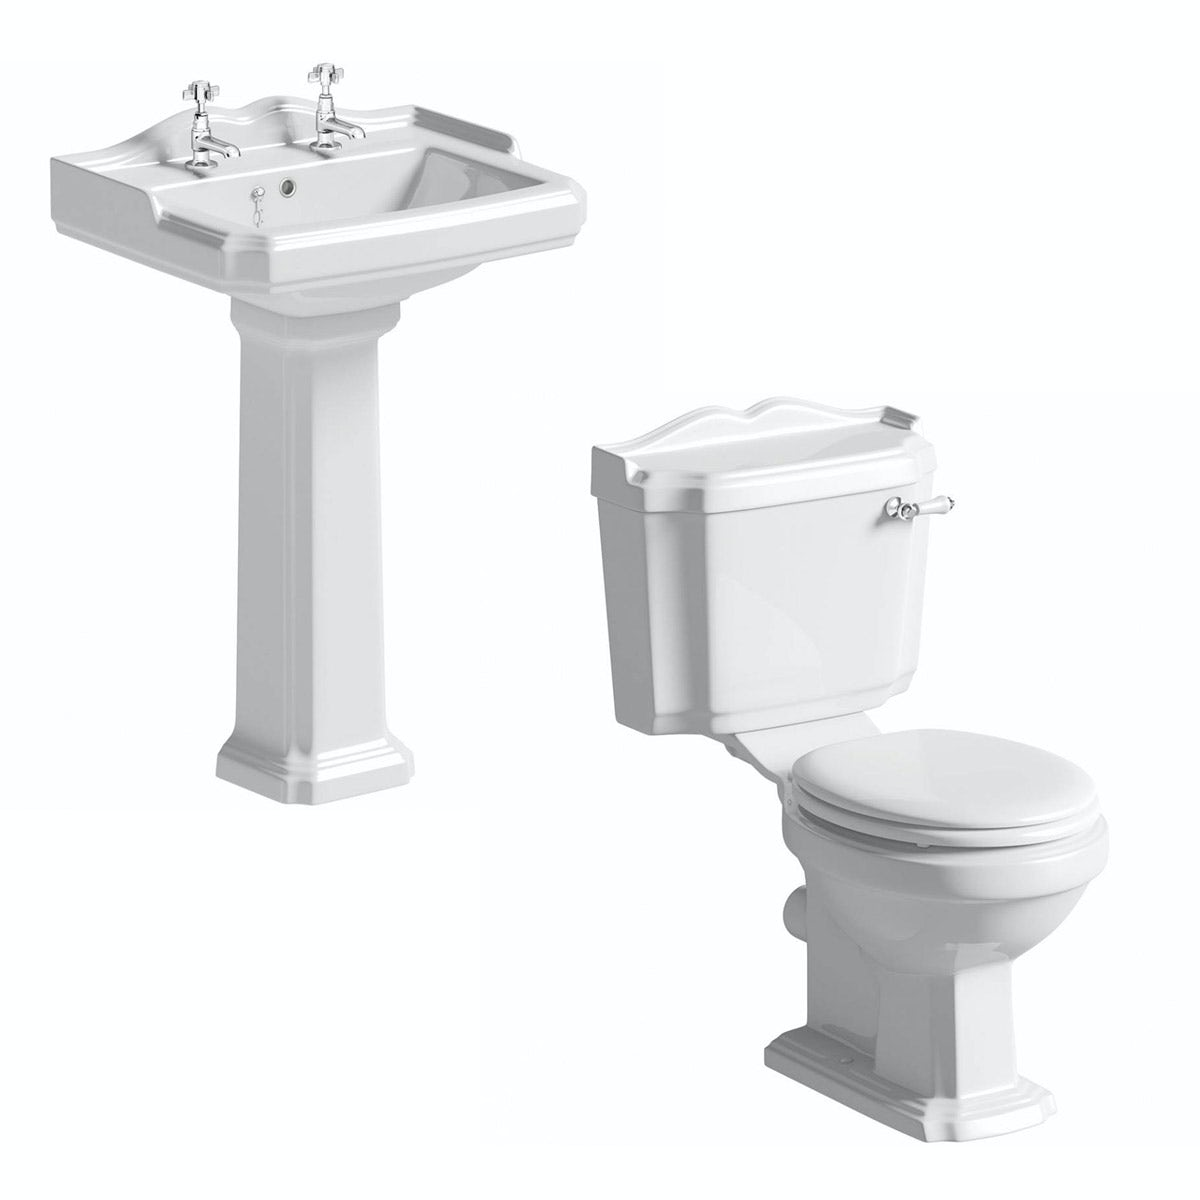 The Bath Co. Winchester close coupled toilet suite with white seat and full pedestal basin 600mm